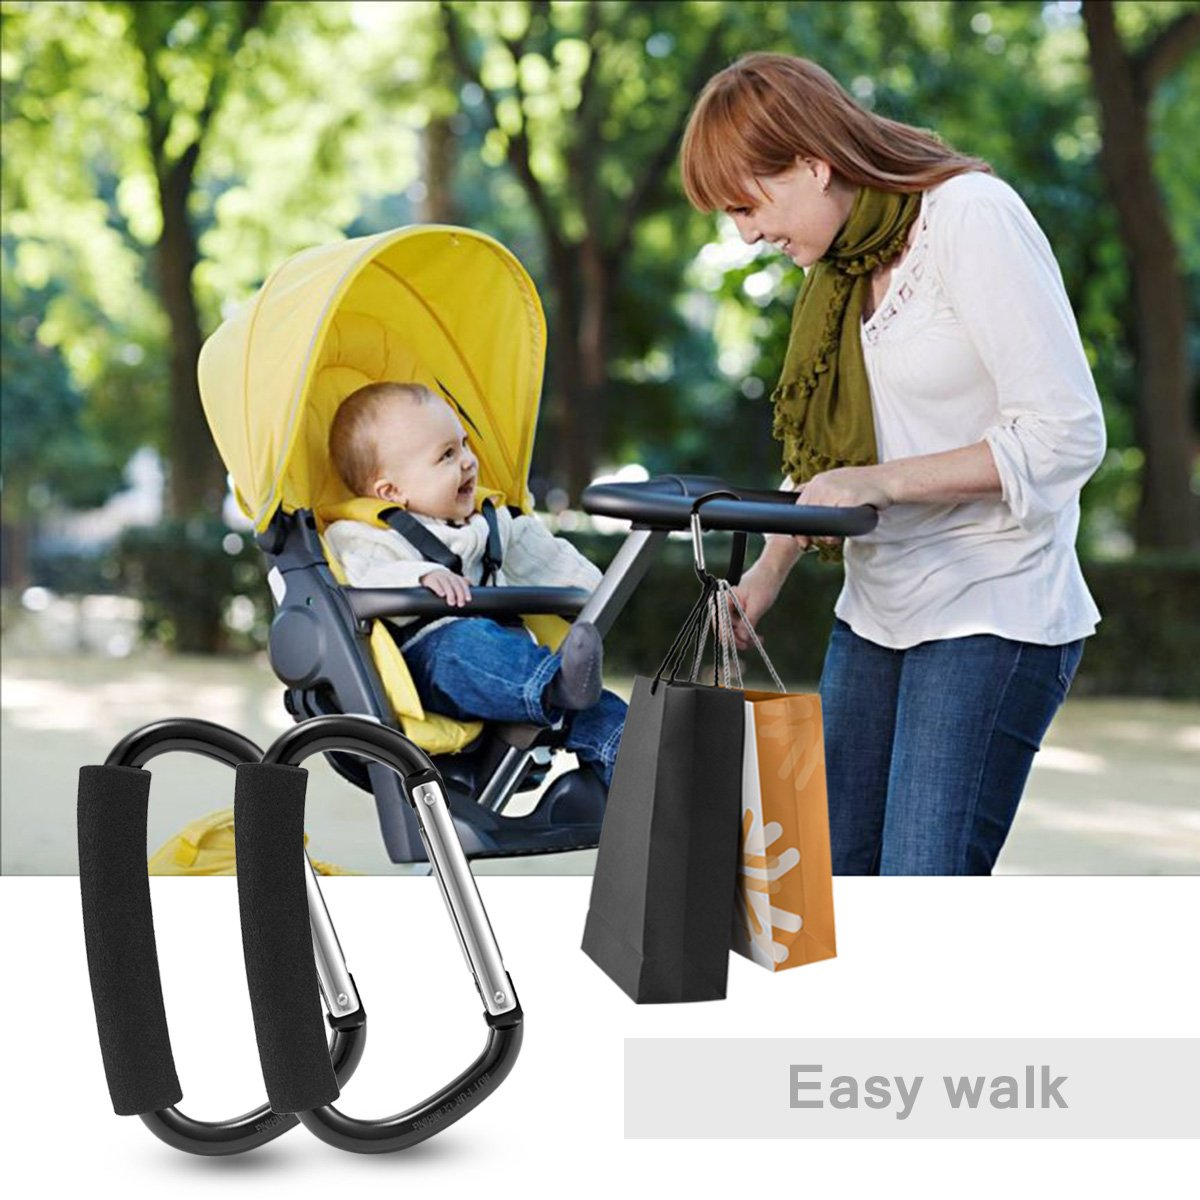 Avinee Handy Stroller Hook,Clips On Any Baby Stroller Or Infant Car Seat,Prefect for Diaper Bags, Toys, Bags, Stroller Accessories, Baby Changing Pad -Pack of 2 by Avinee (Image #4)